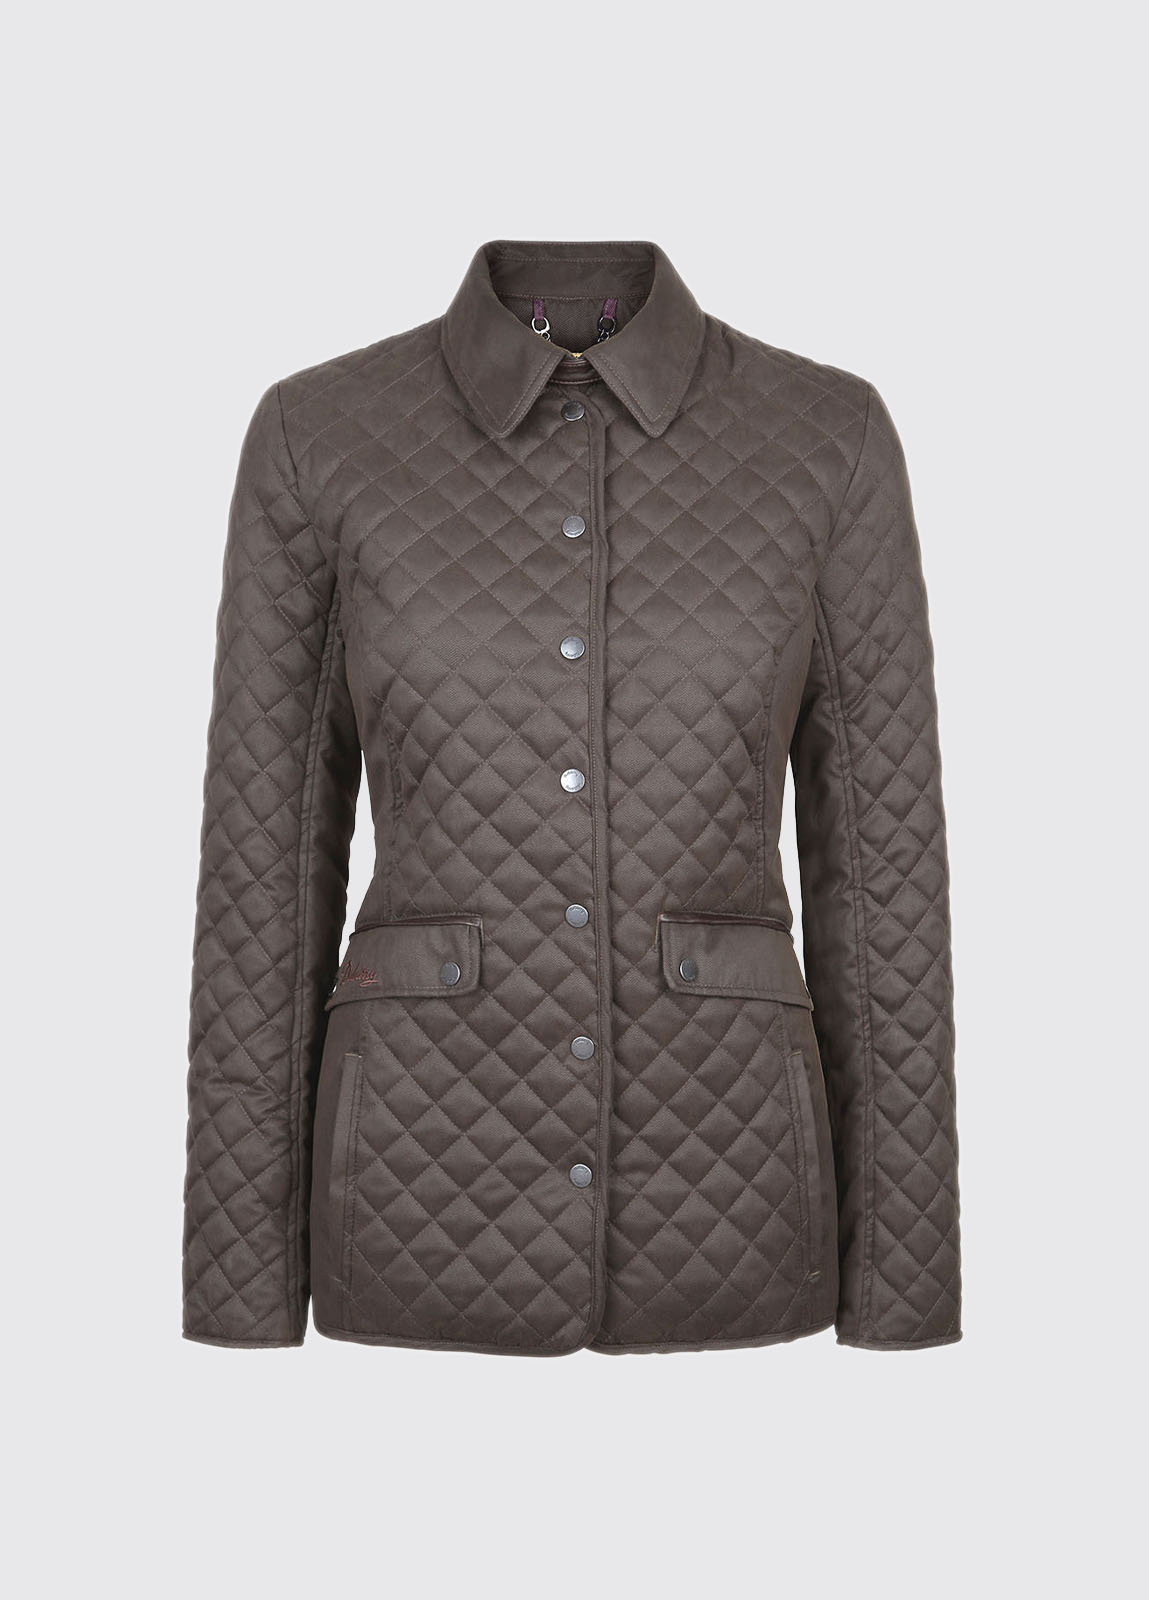 Shaw Women's Quilted Jacket - Verdigris